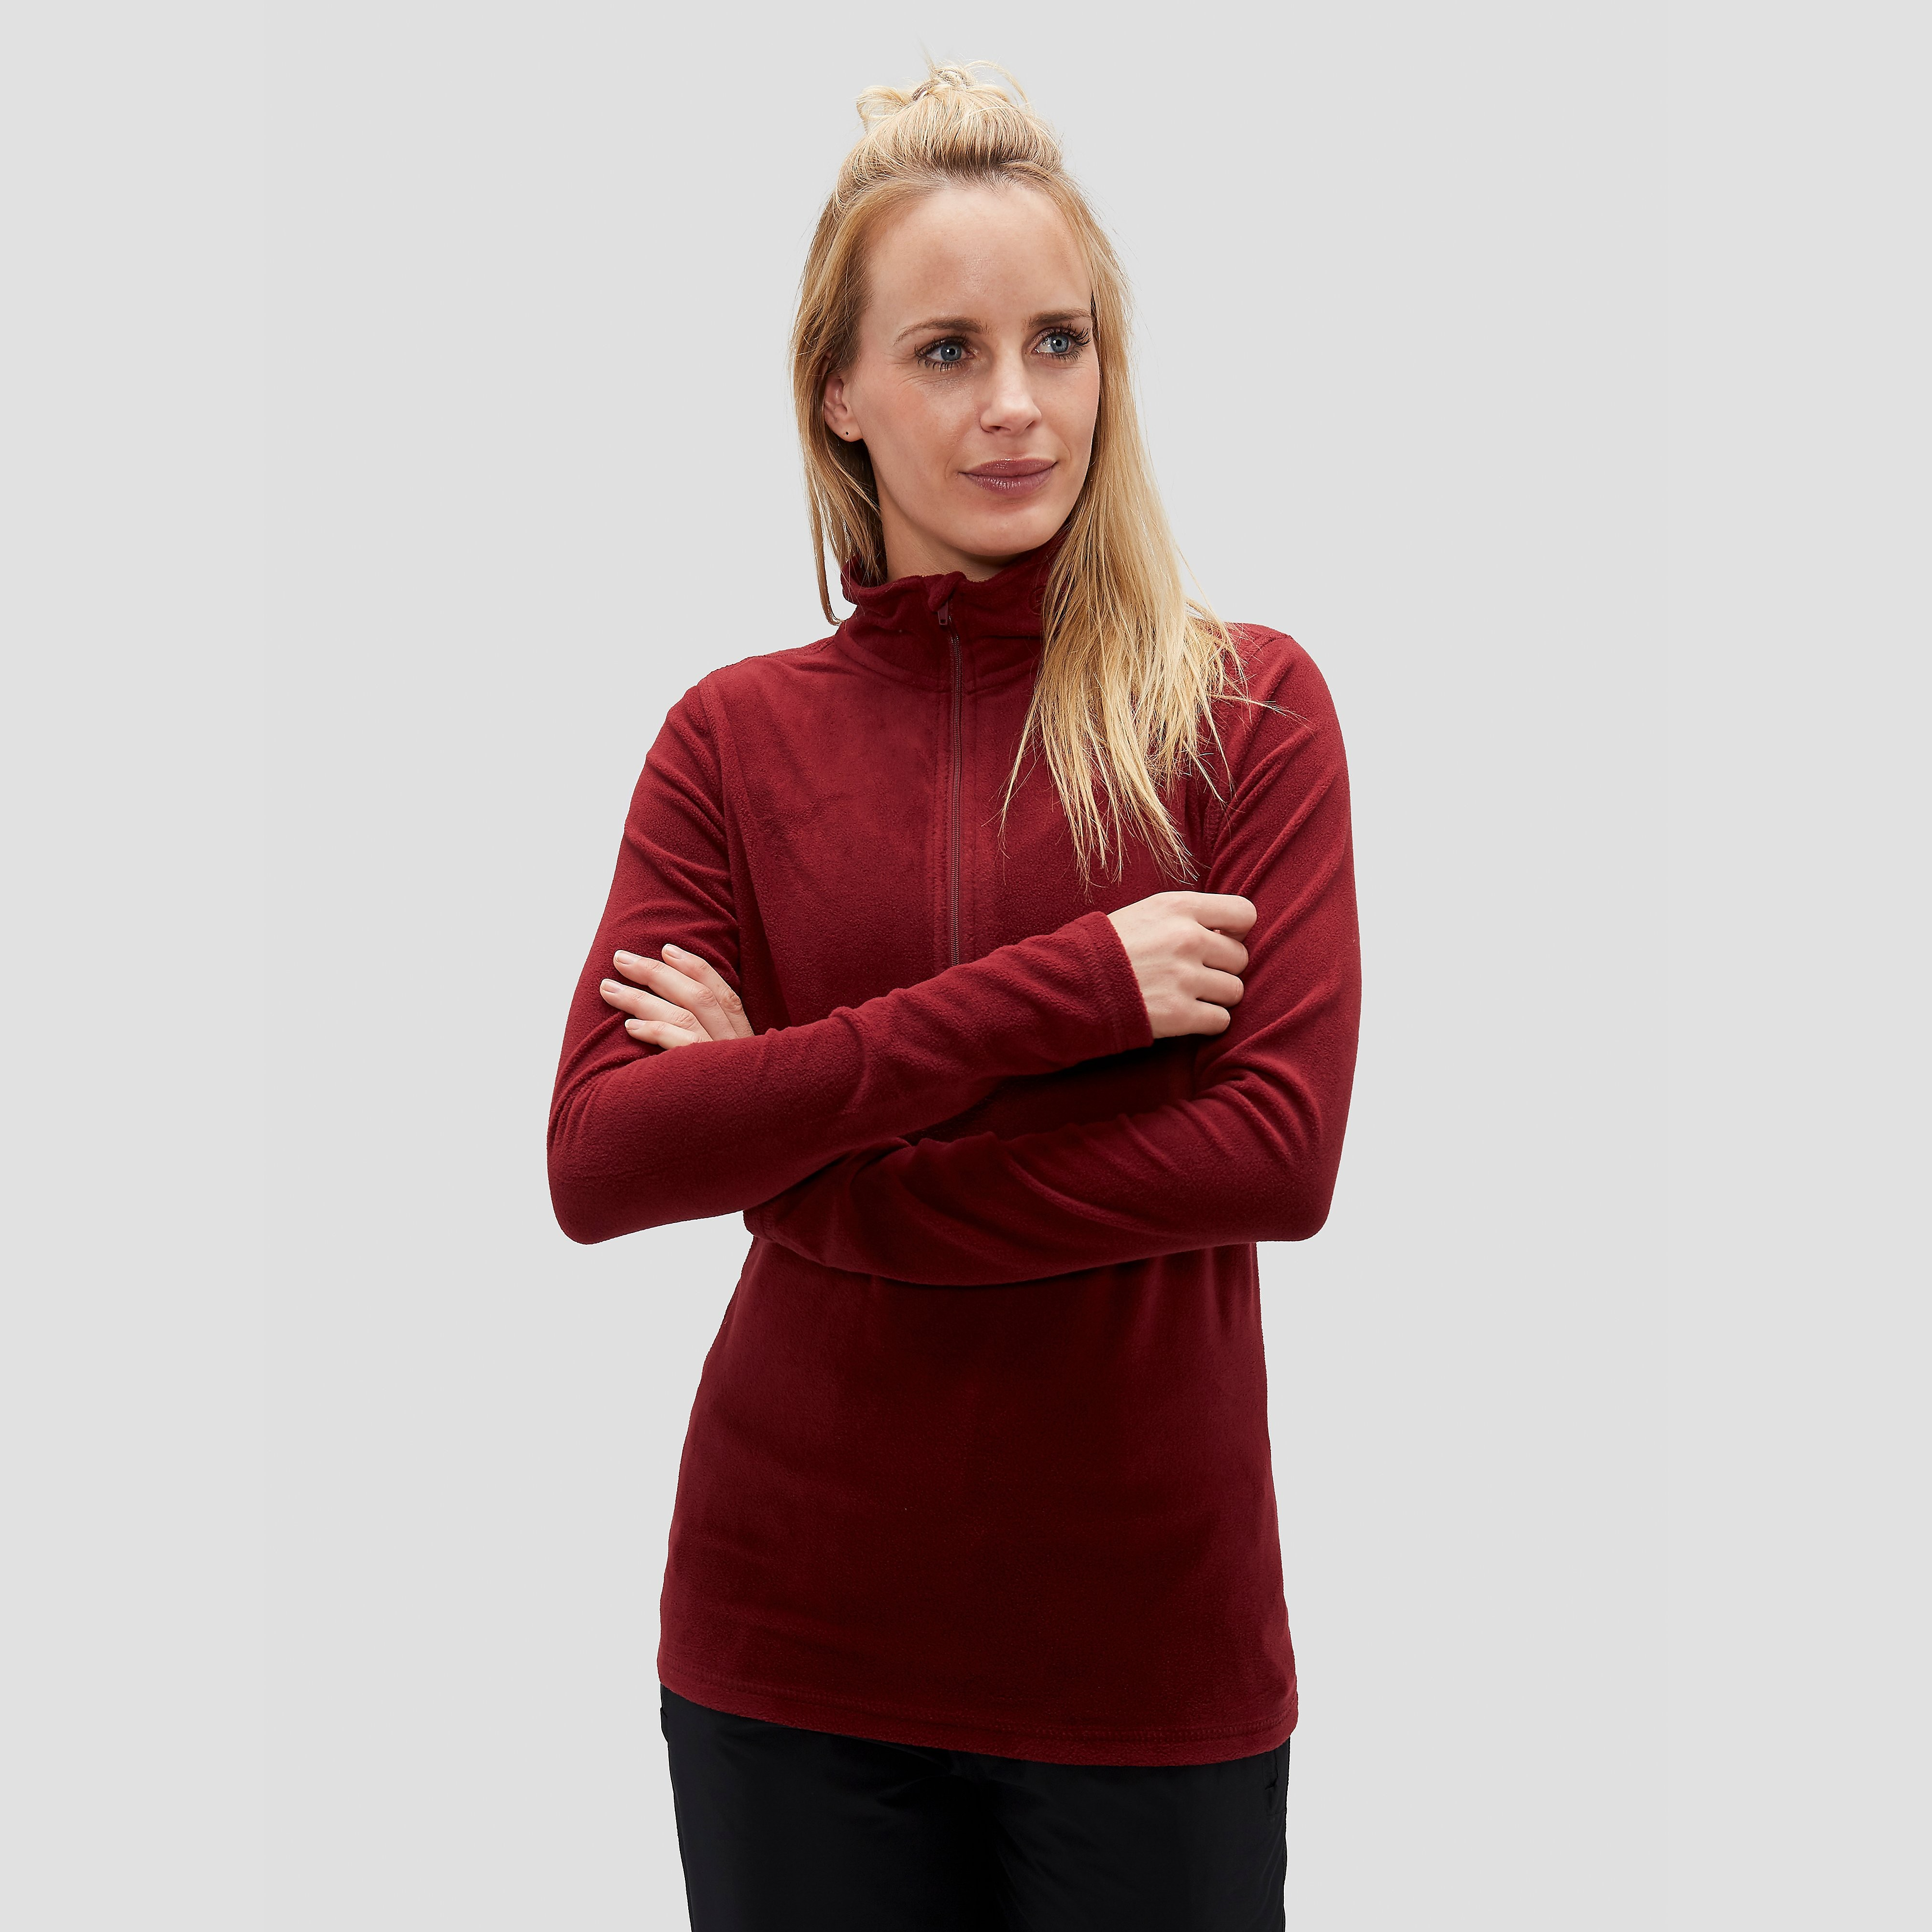 SPEX JULIANA FLEECE OUTDOOR TRUI 1/4-RITS ROOD DAMES